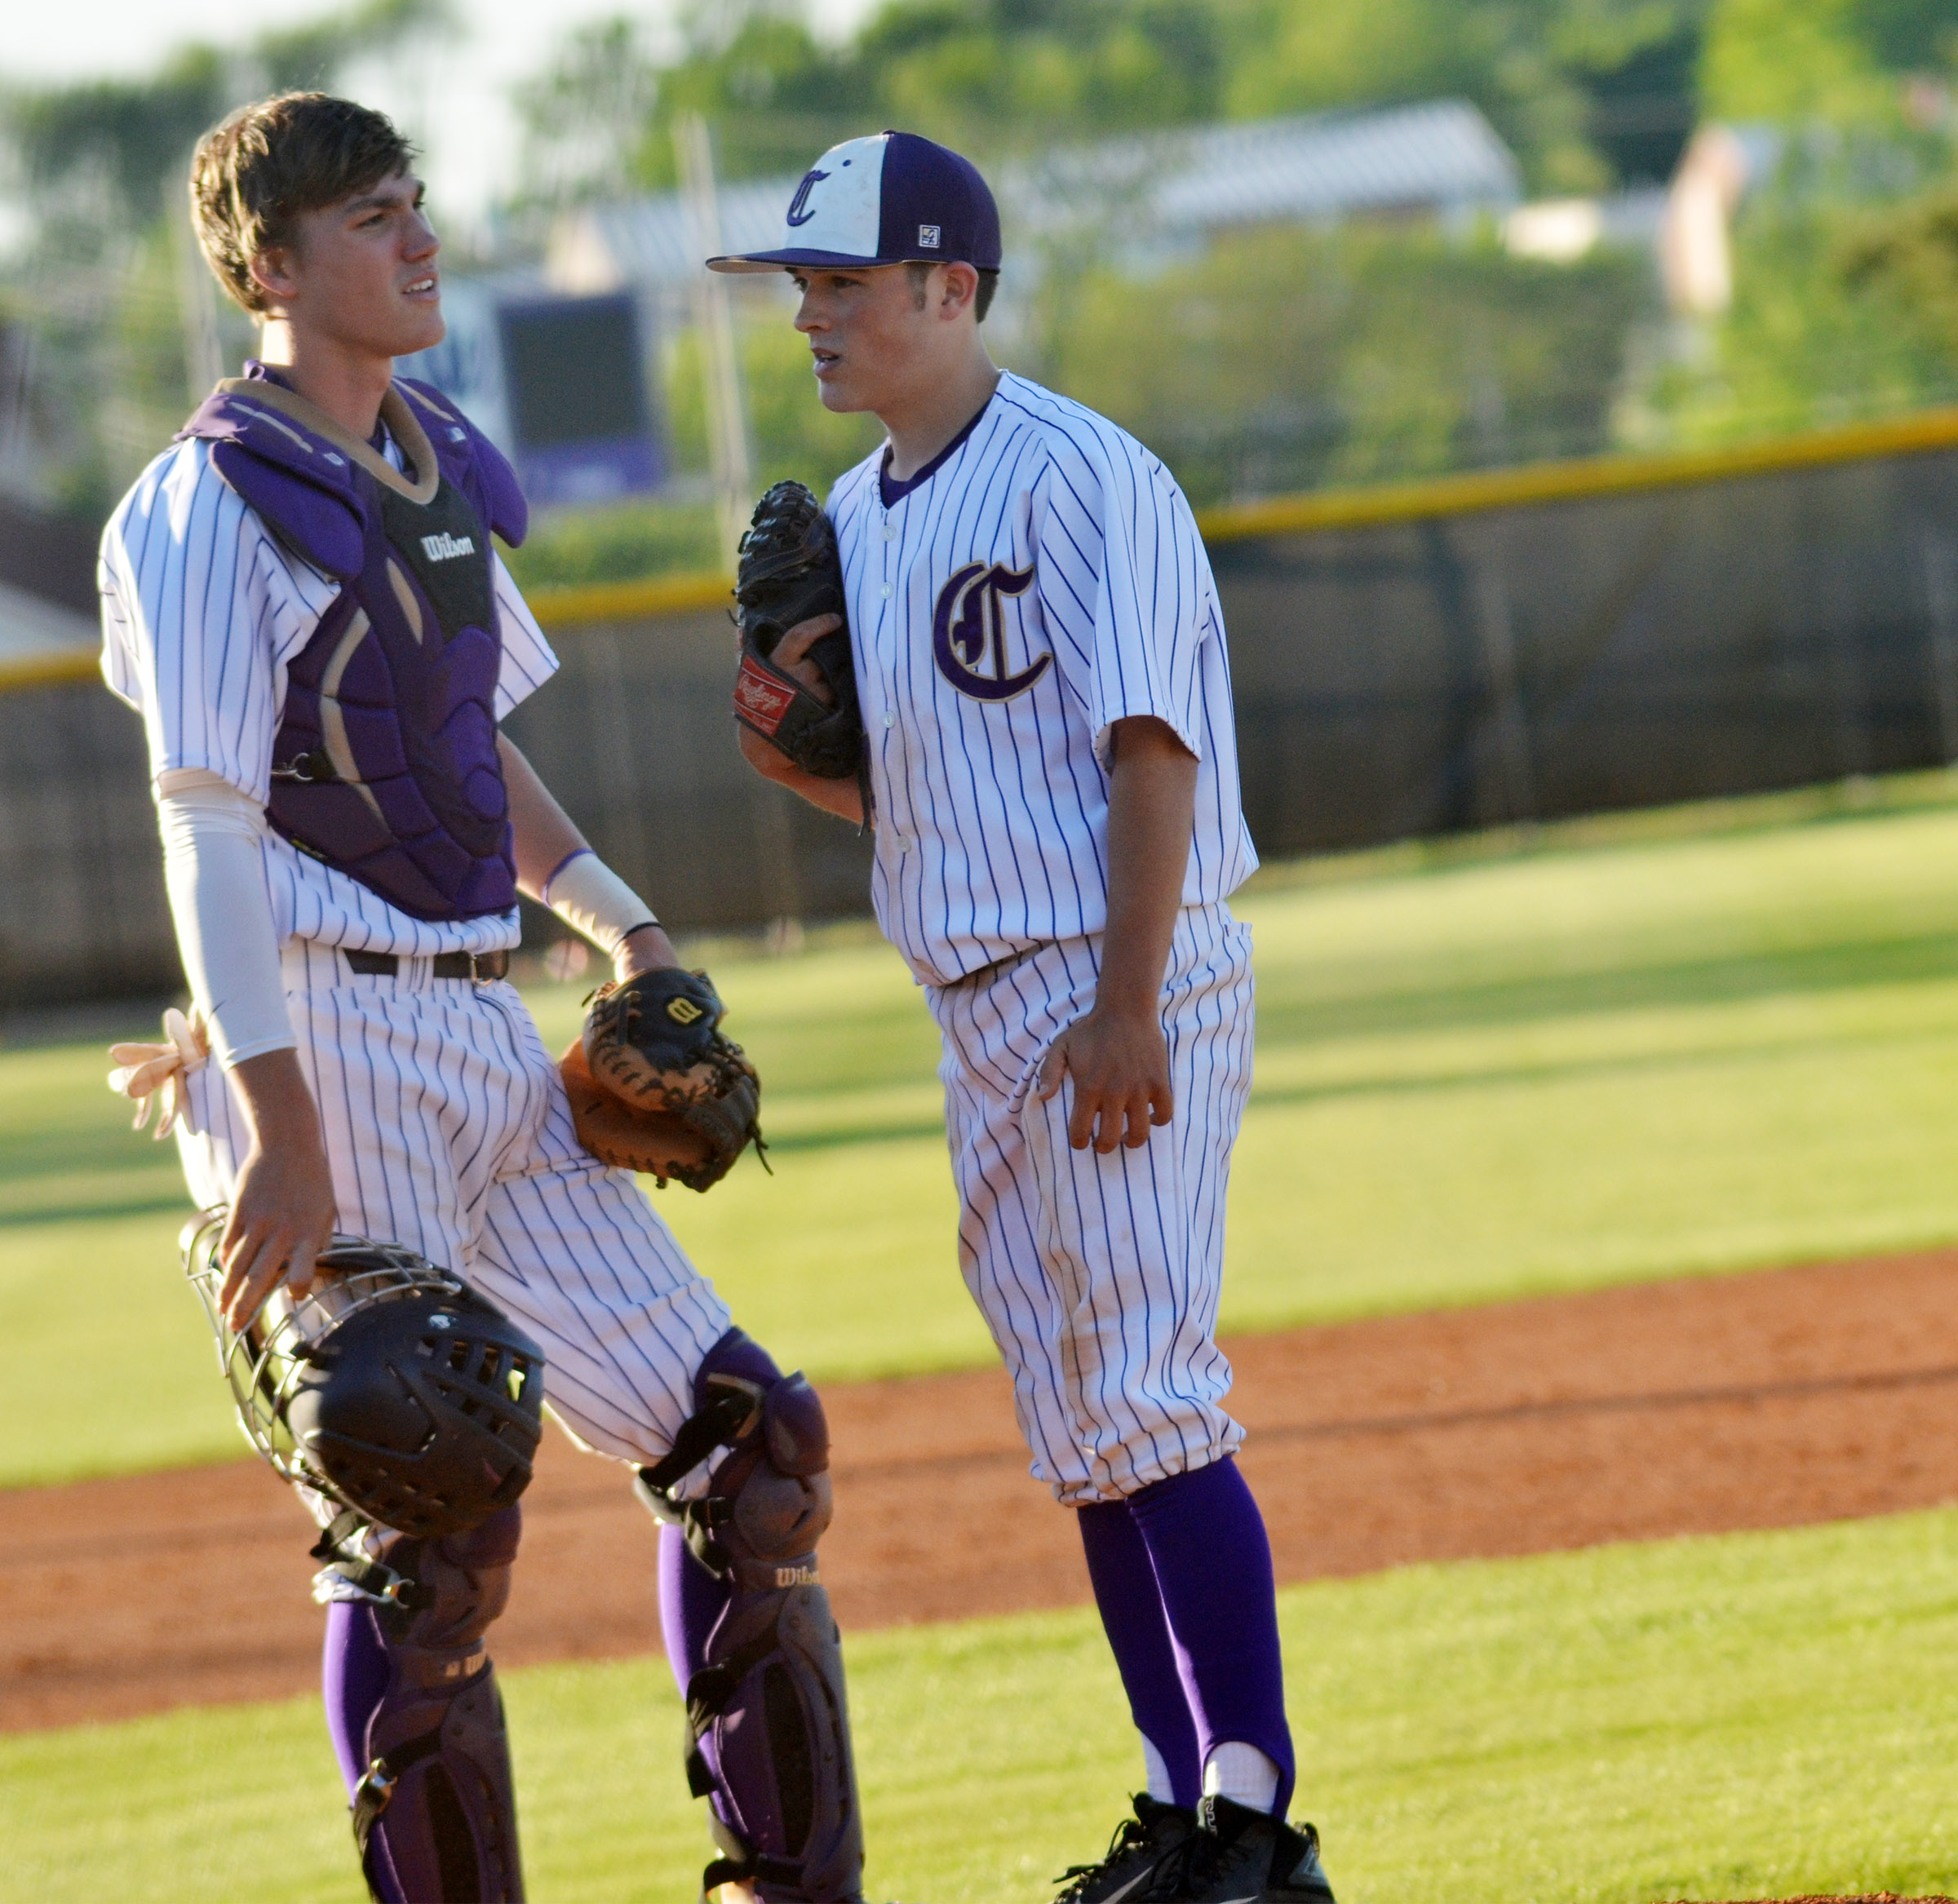 CHS senior Zack Bottoms talks with sophomore Ryan Kearney during an inning.